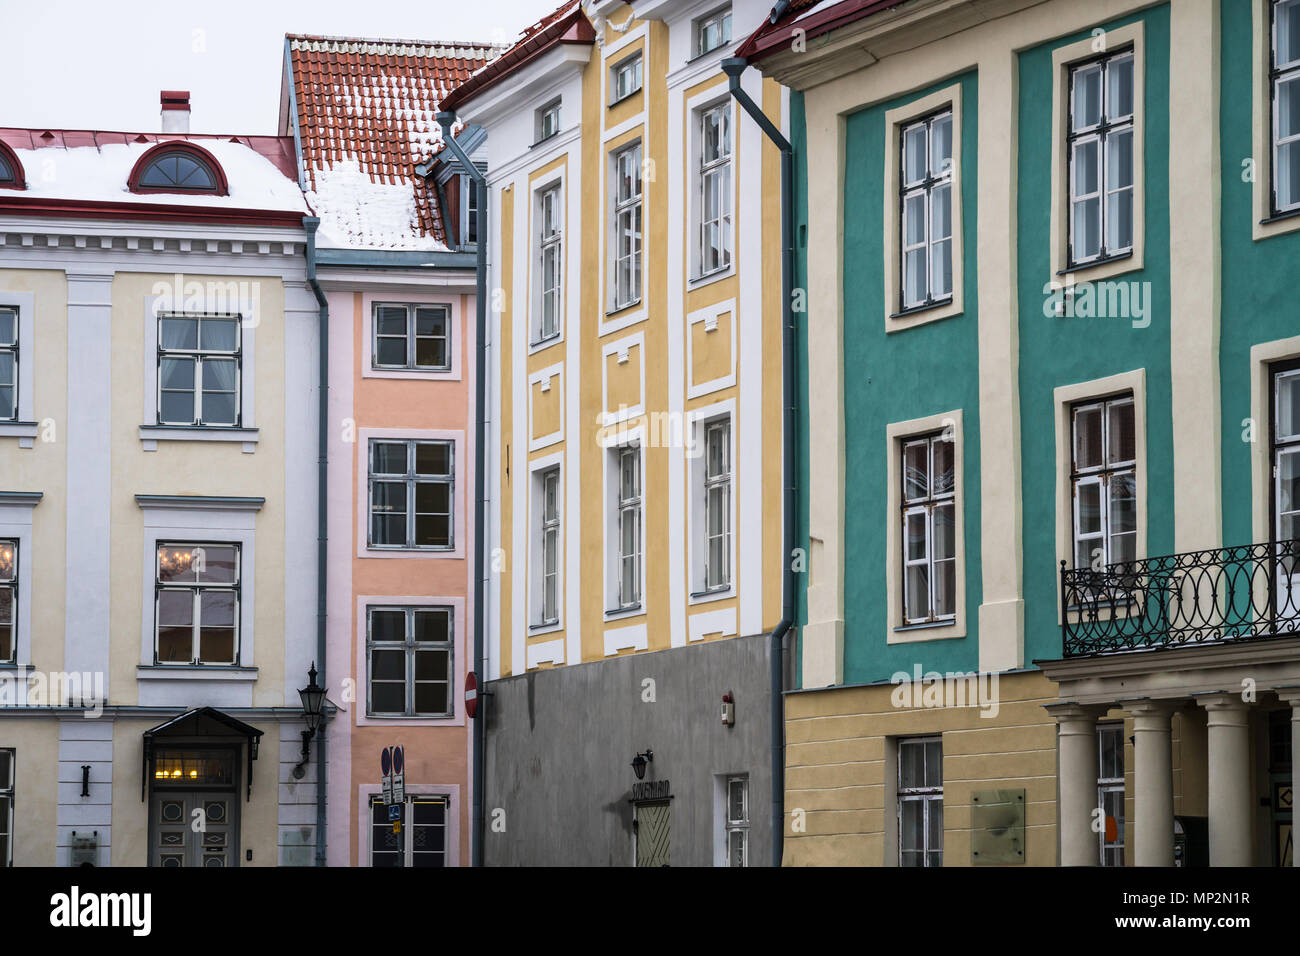 Colorul building in Tallinn old town, Estonia capital city in the Baltic area of North Eastern Europe Stock Photo